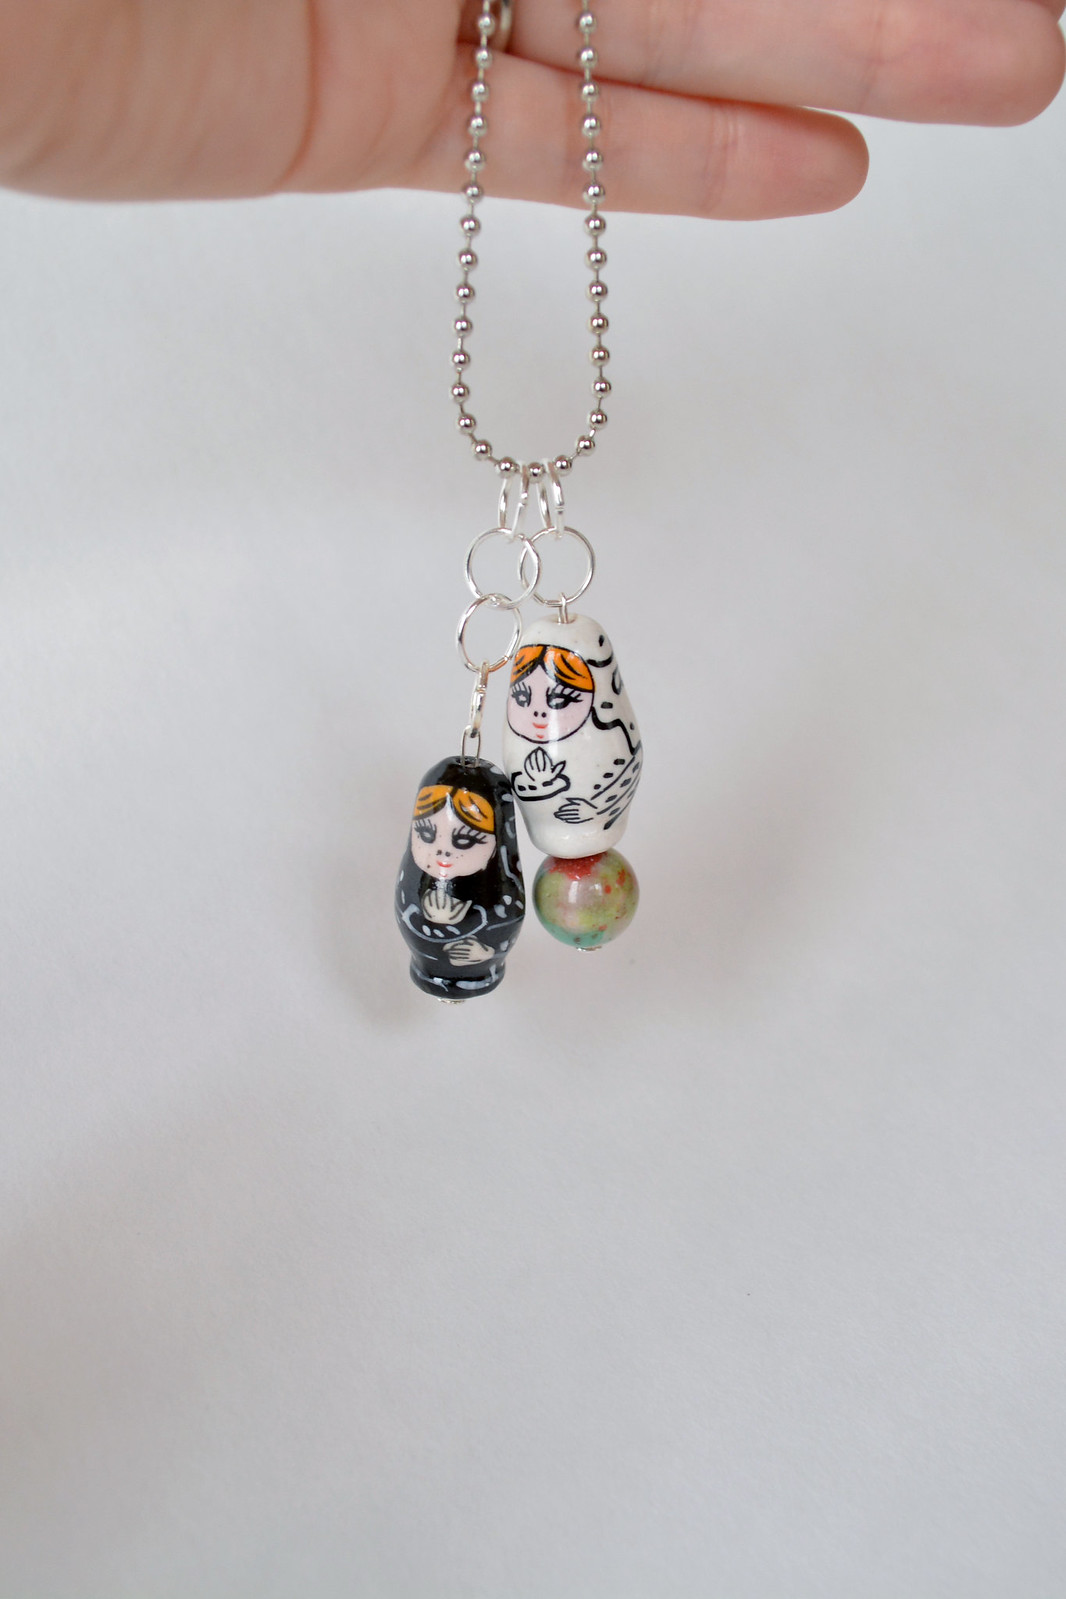 Add some quirk to any outfit with the fast and simple matryoshka doll necklace